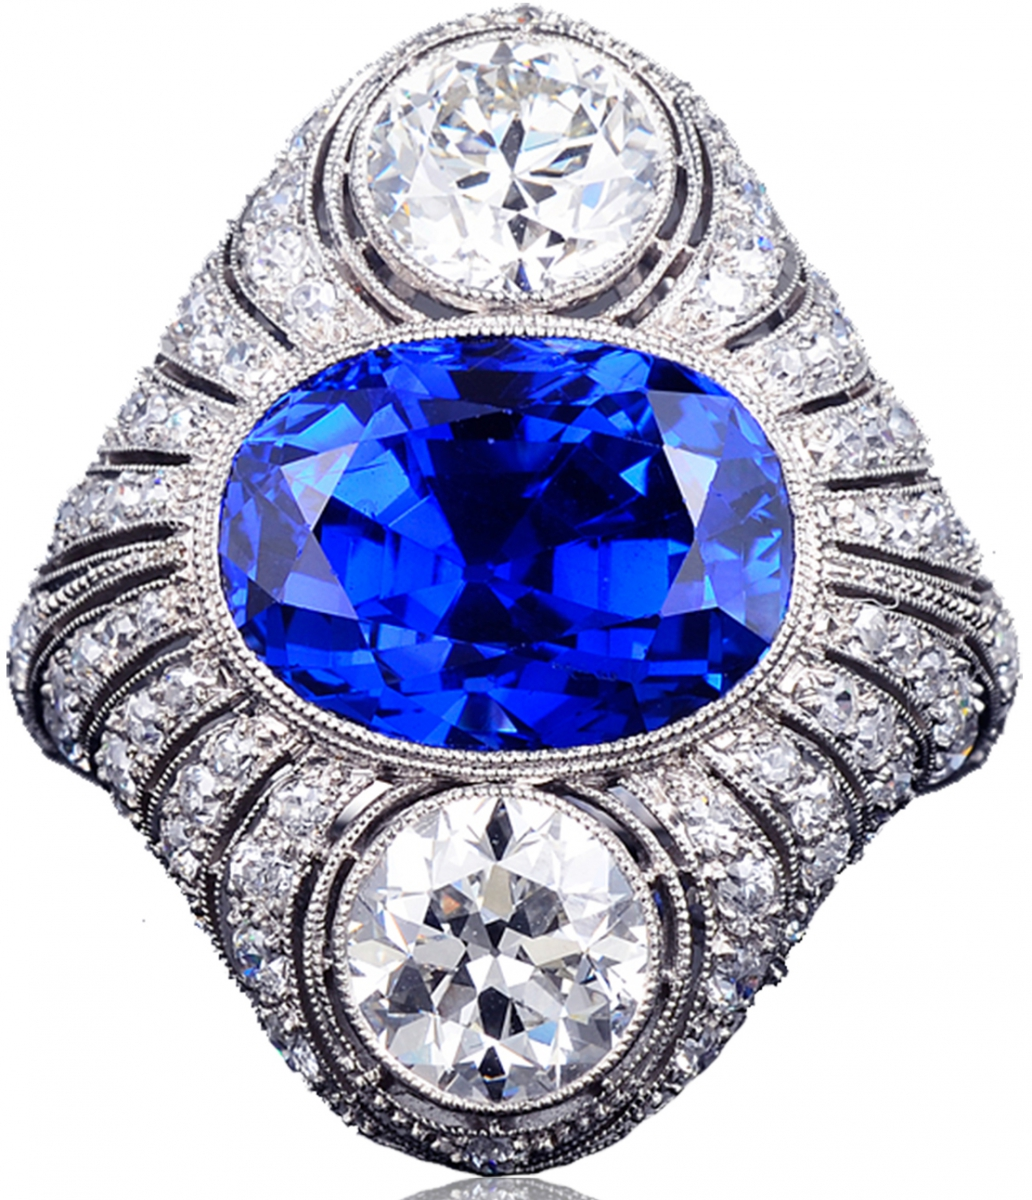 gold diamonds sapphire jaredstore en click ct natural mv to expand tw jar engagement ring jared zm